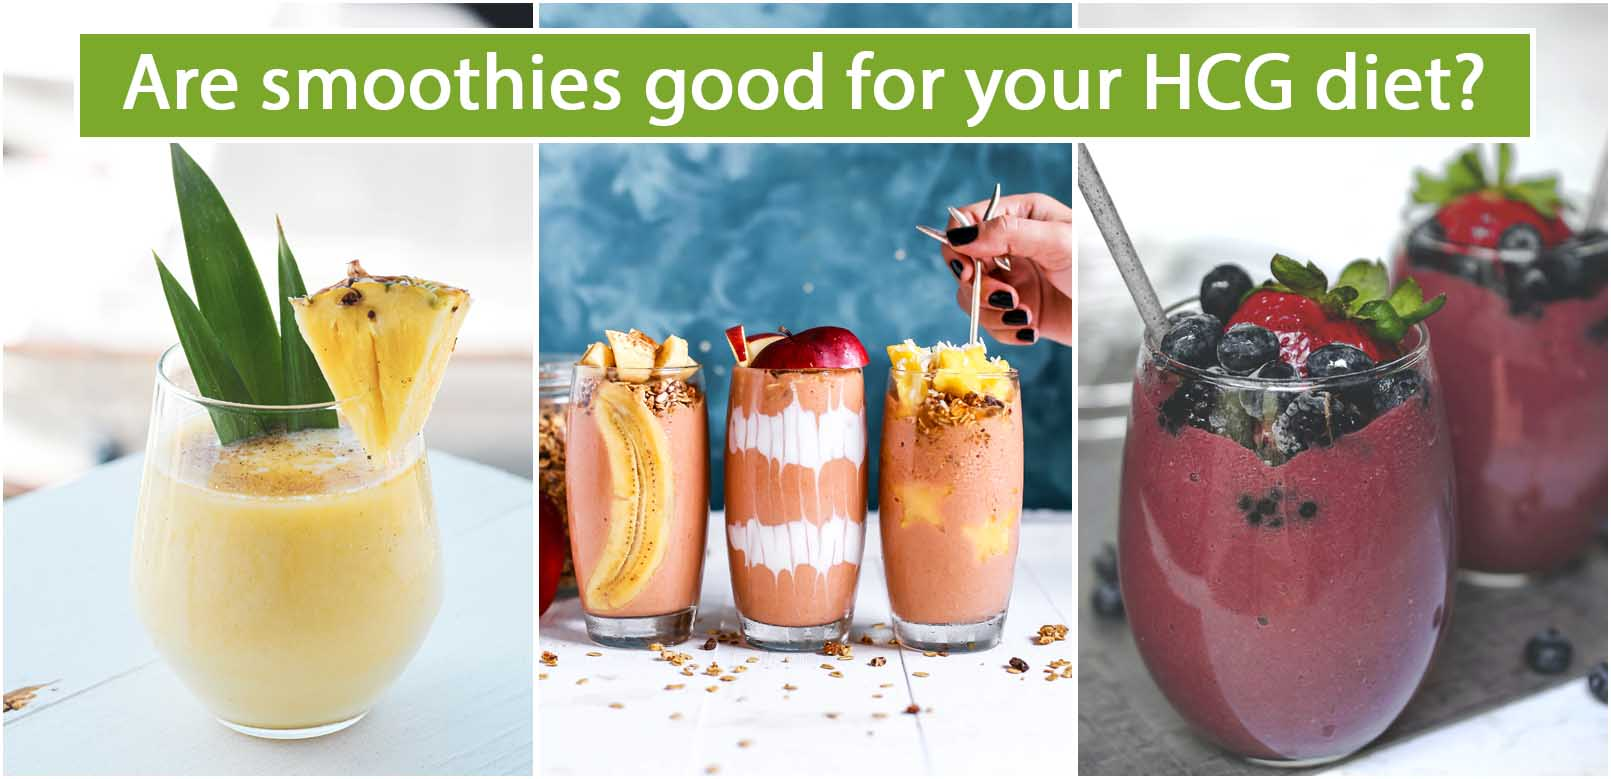 Are smoothies good for your HCG diet